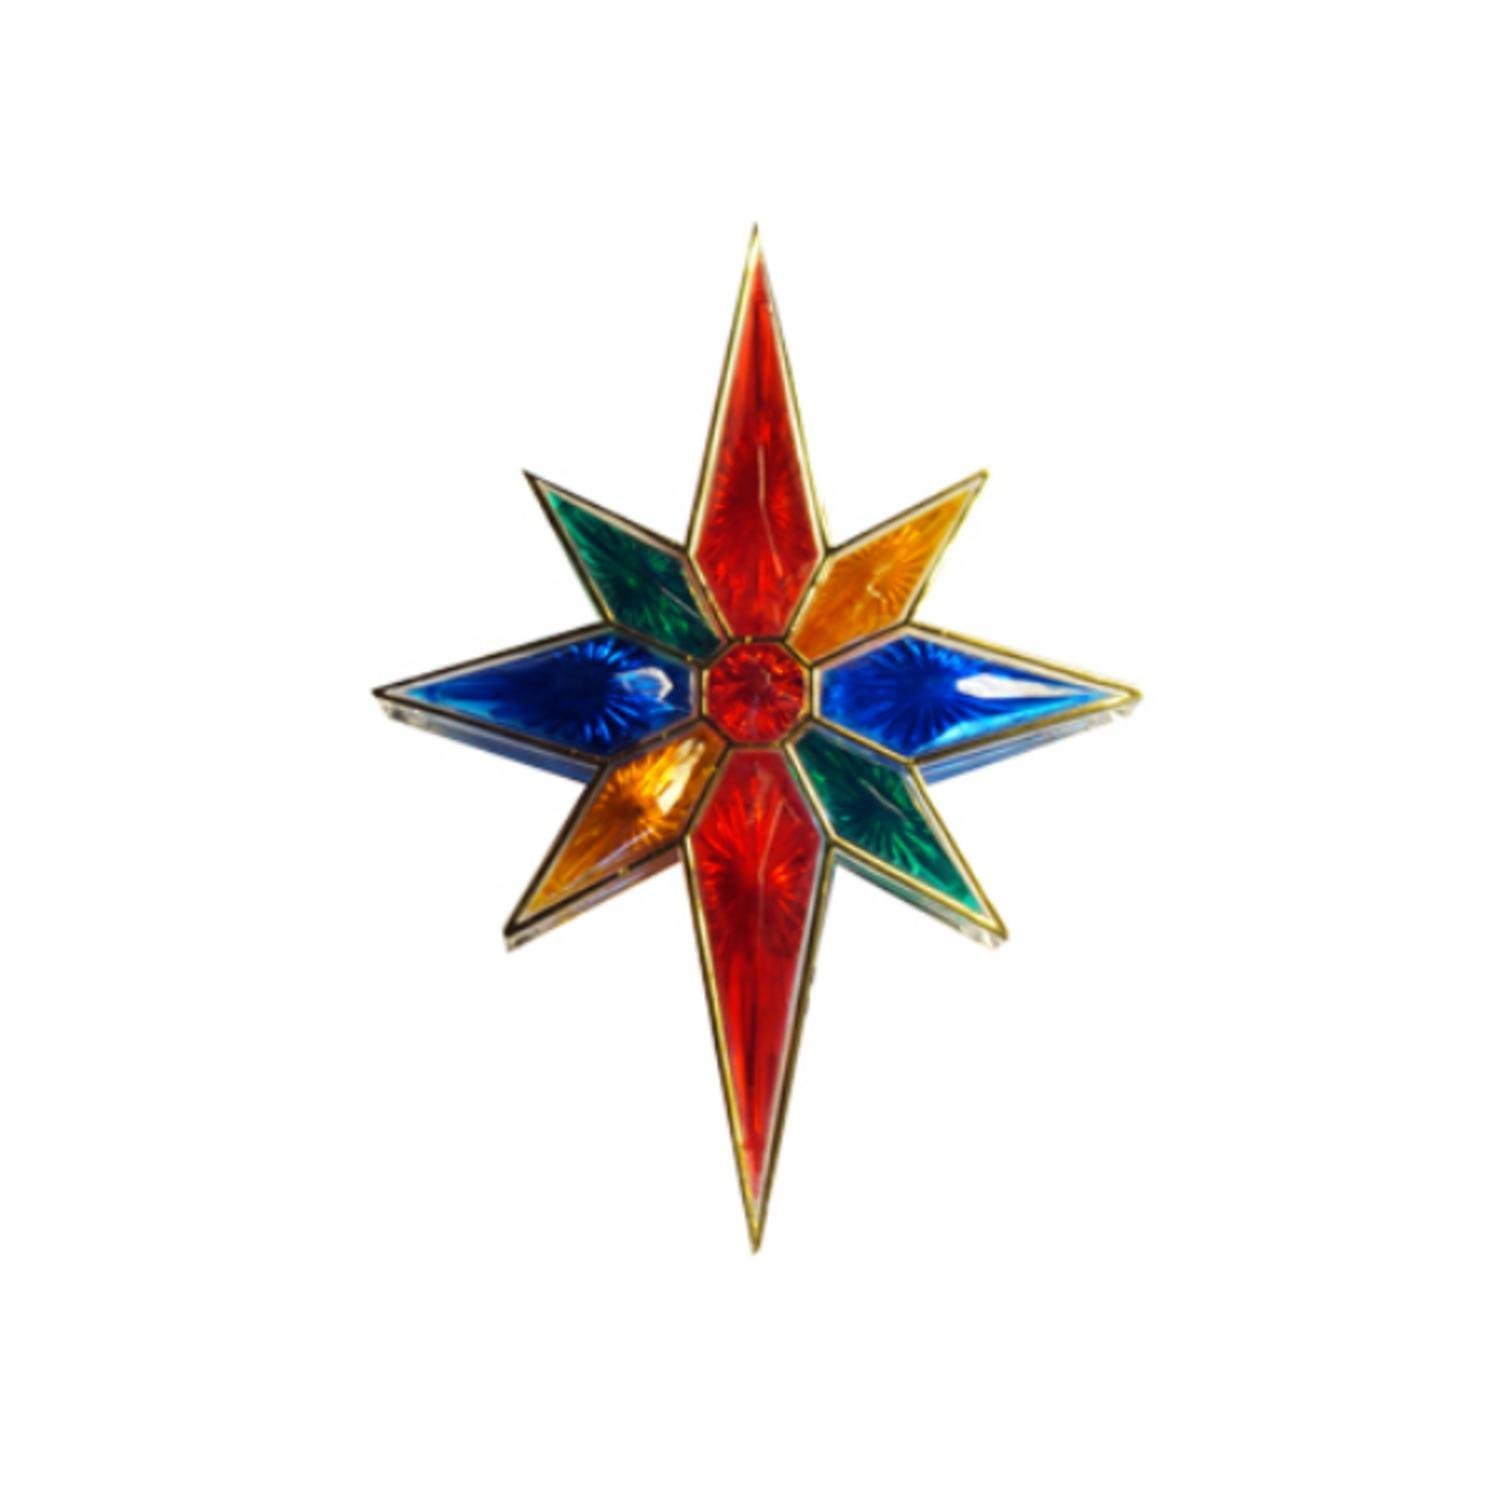 Sienna Lighted Faceted Multicolored Bethlehem Star Christmas Tree Topper with Clear Lights, 11''